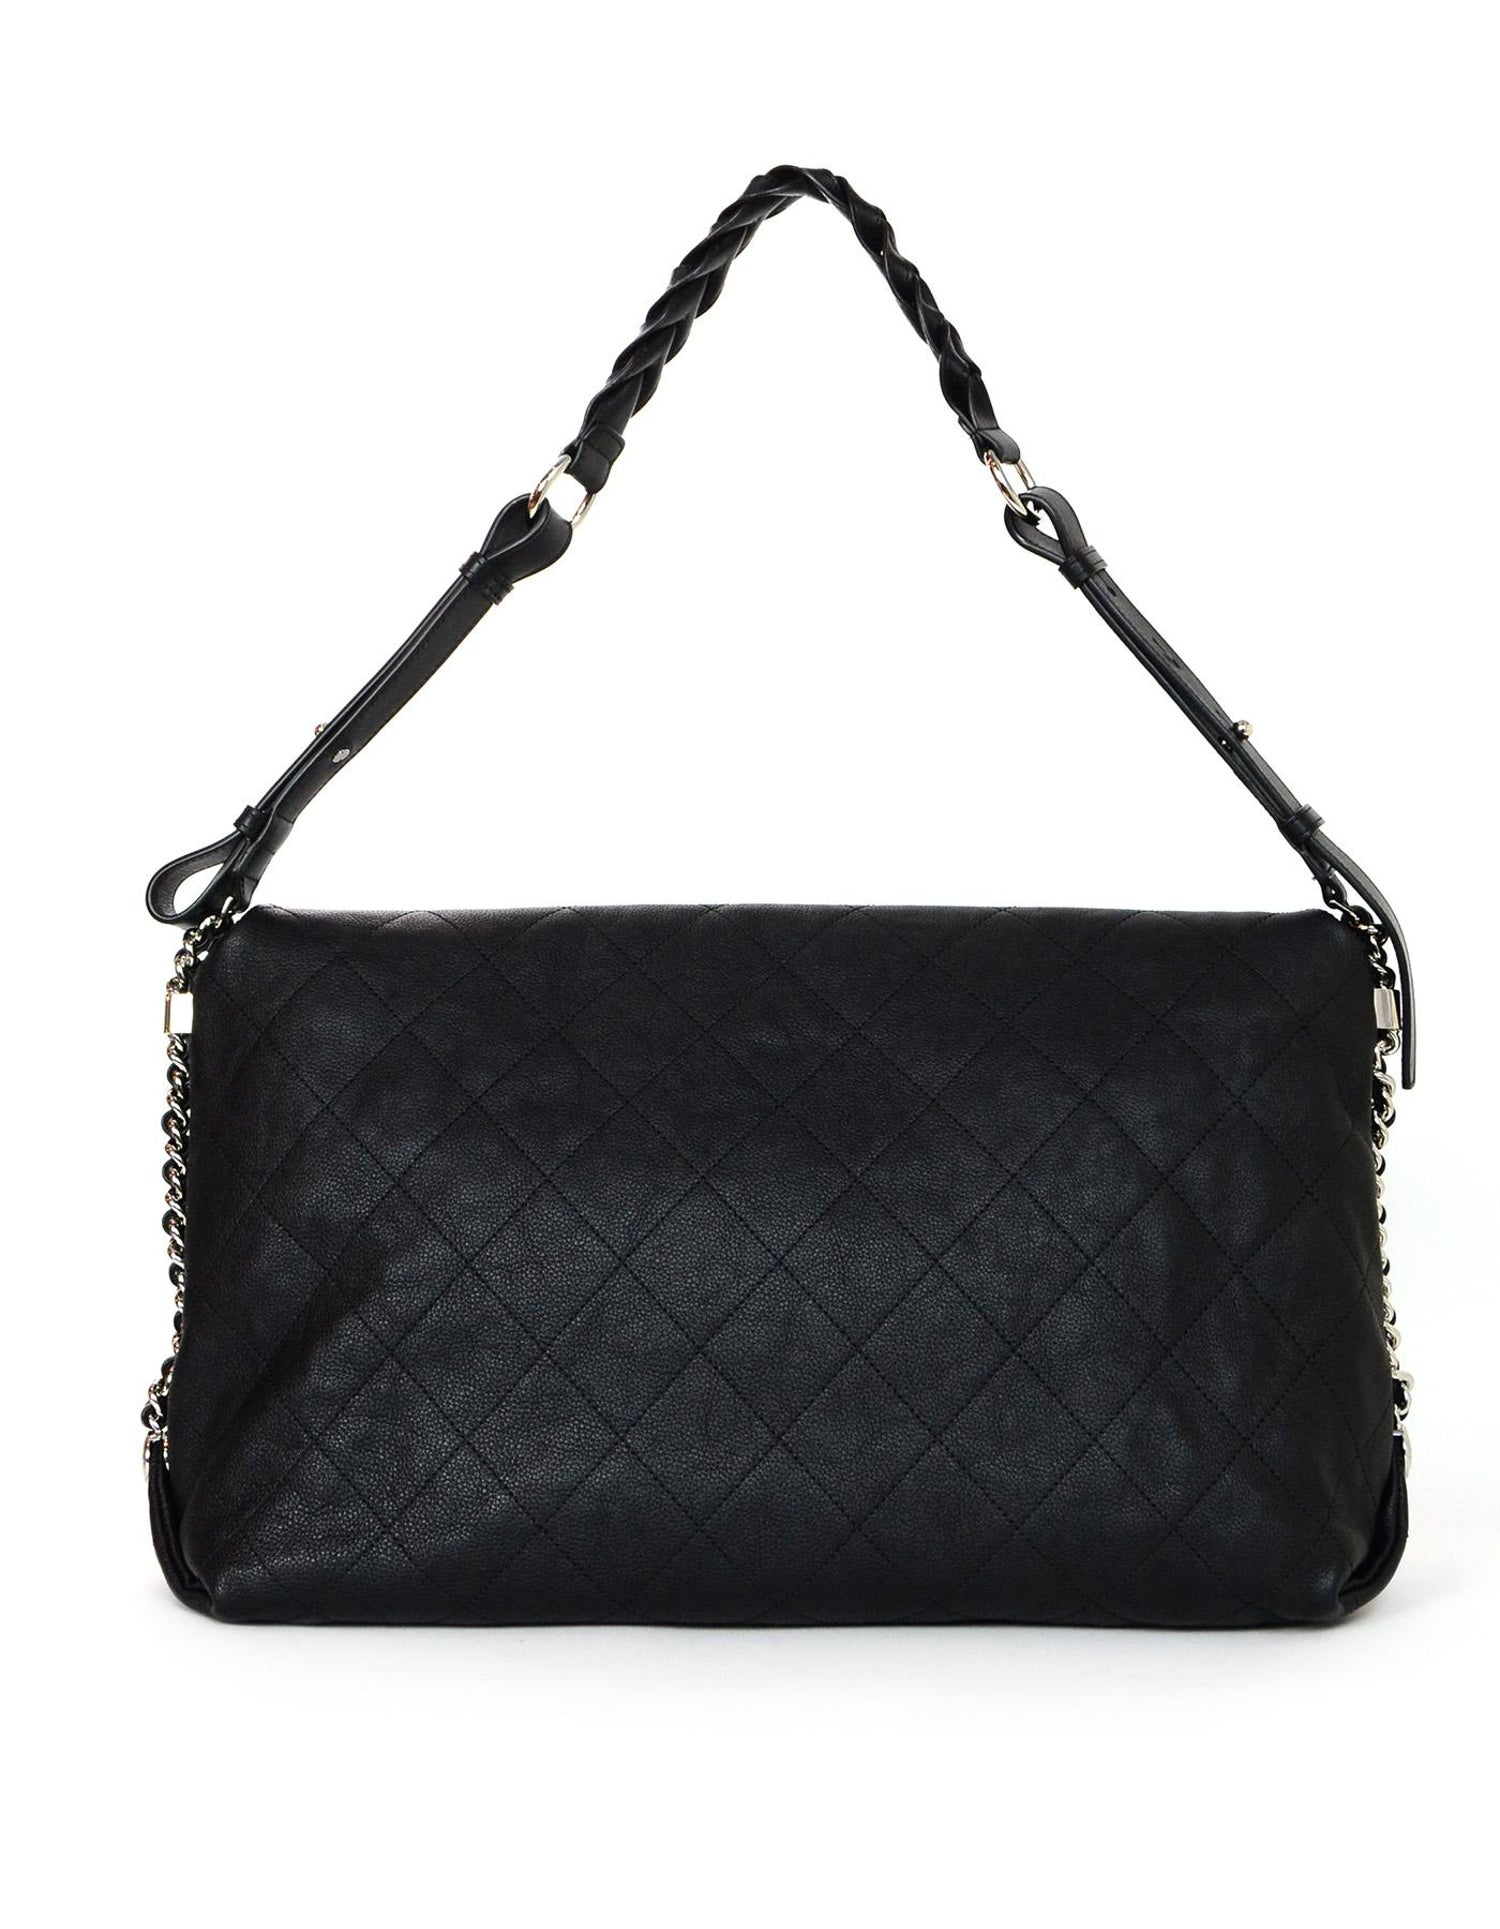 feece7eaca97 Chanel  18 Black Grained Calfskin Quilted Medium Braided with Style Flap  Bag For Sale at 1stdibs